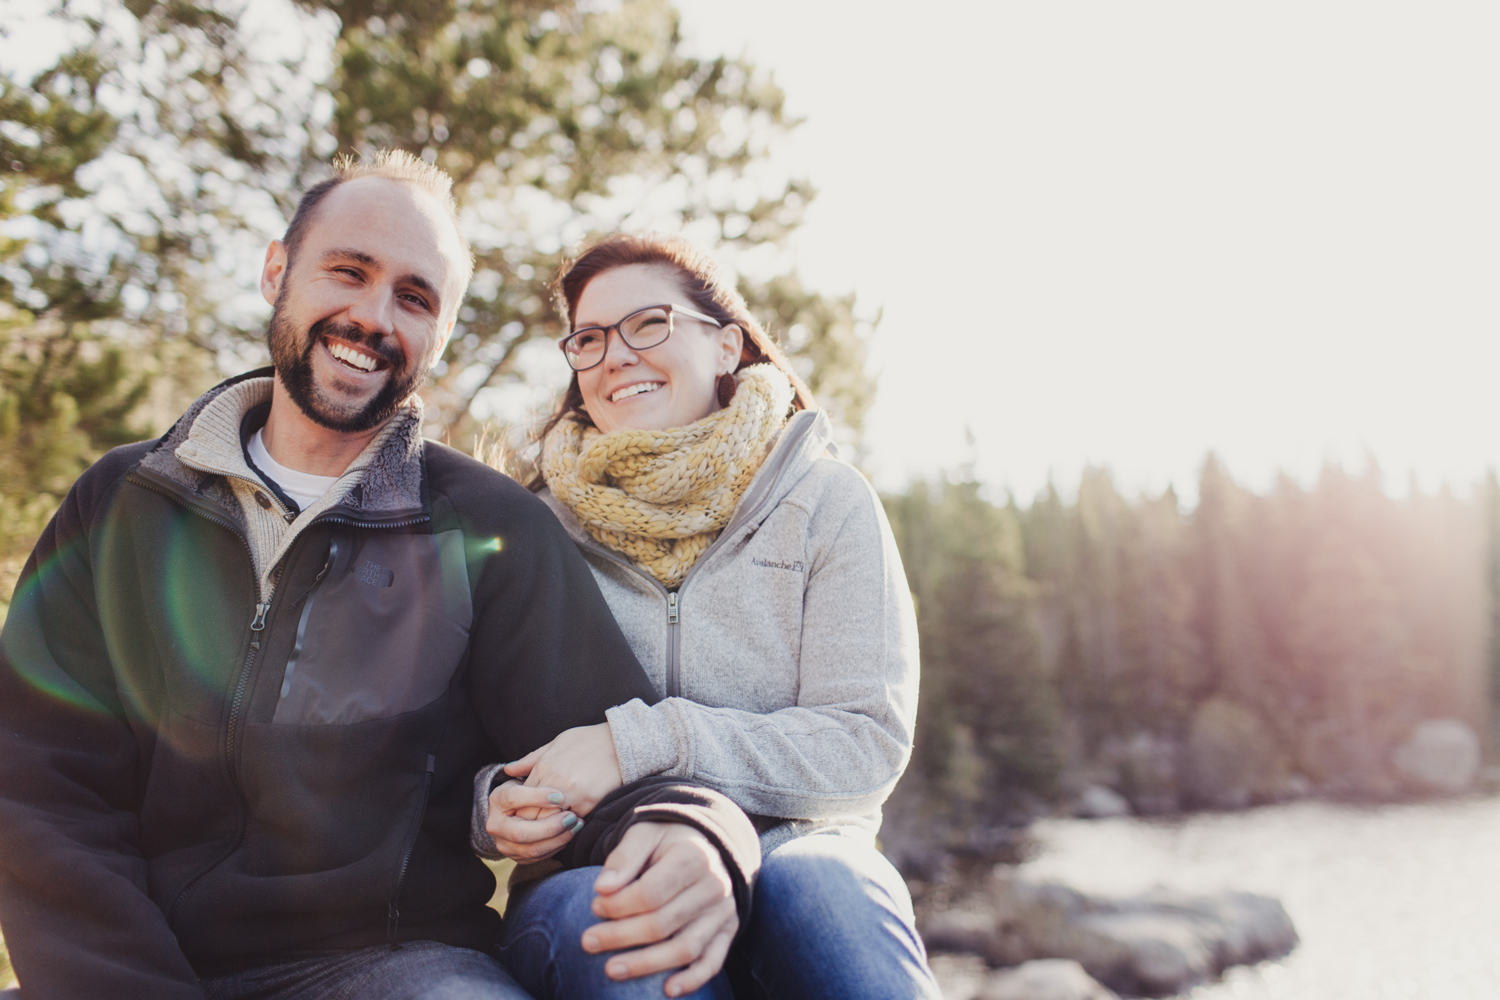 Jillian VanZytveld Photography Rocky Mountain National Park Engagement Portraits - 05.jpg